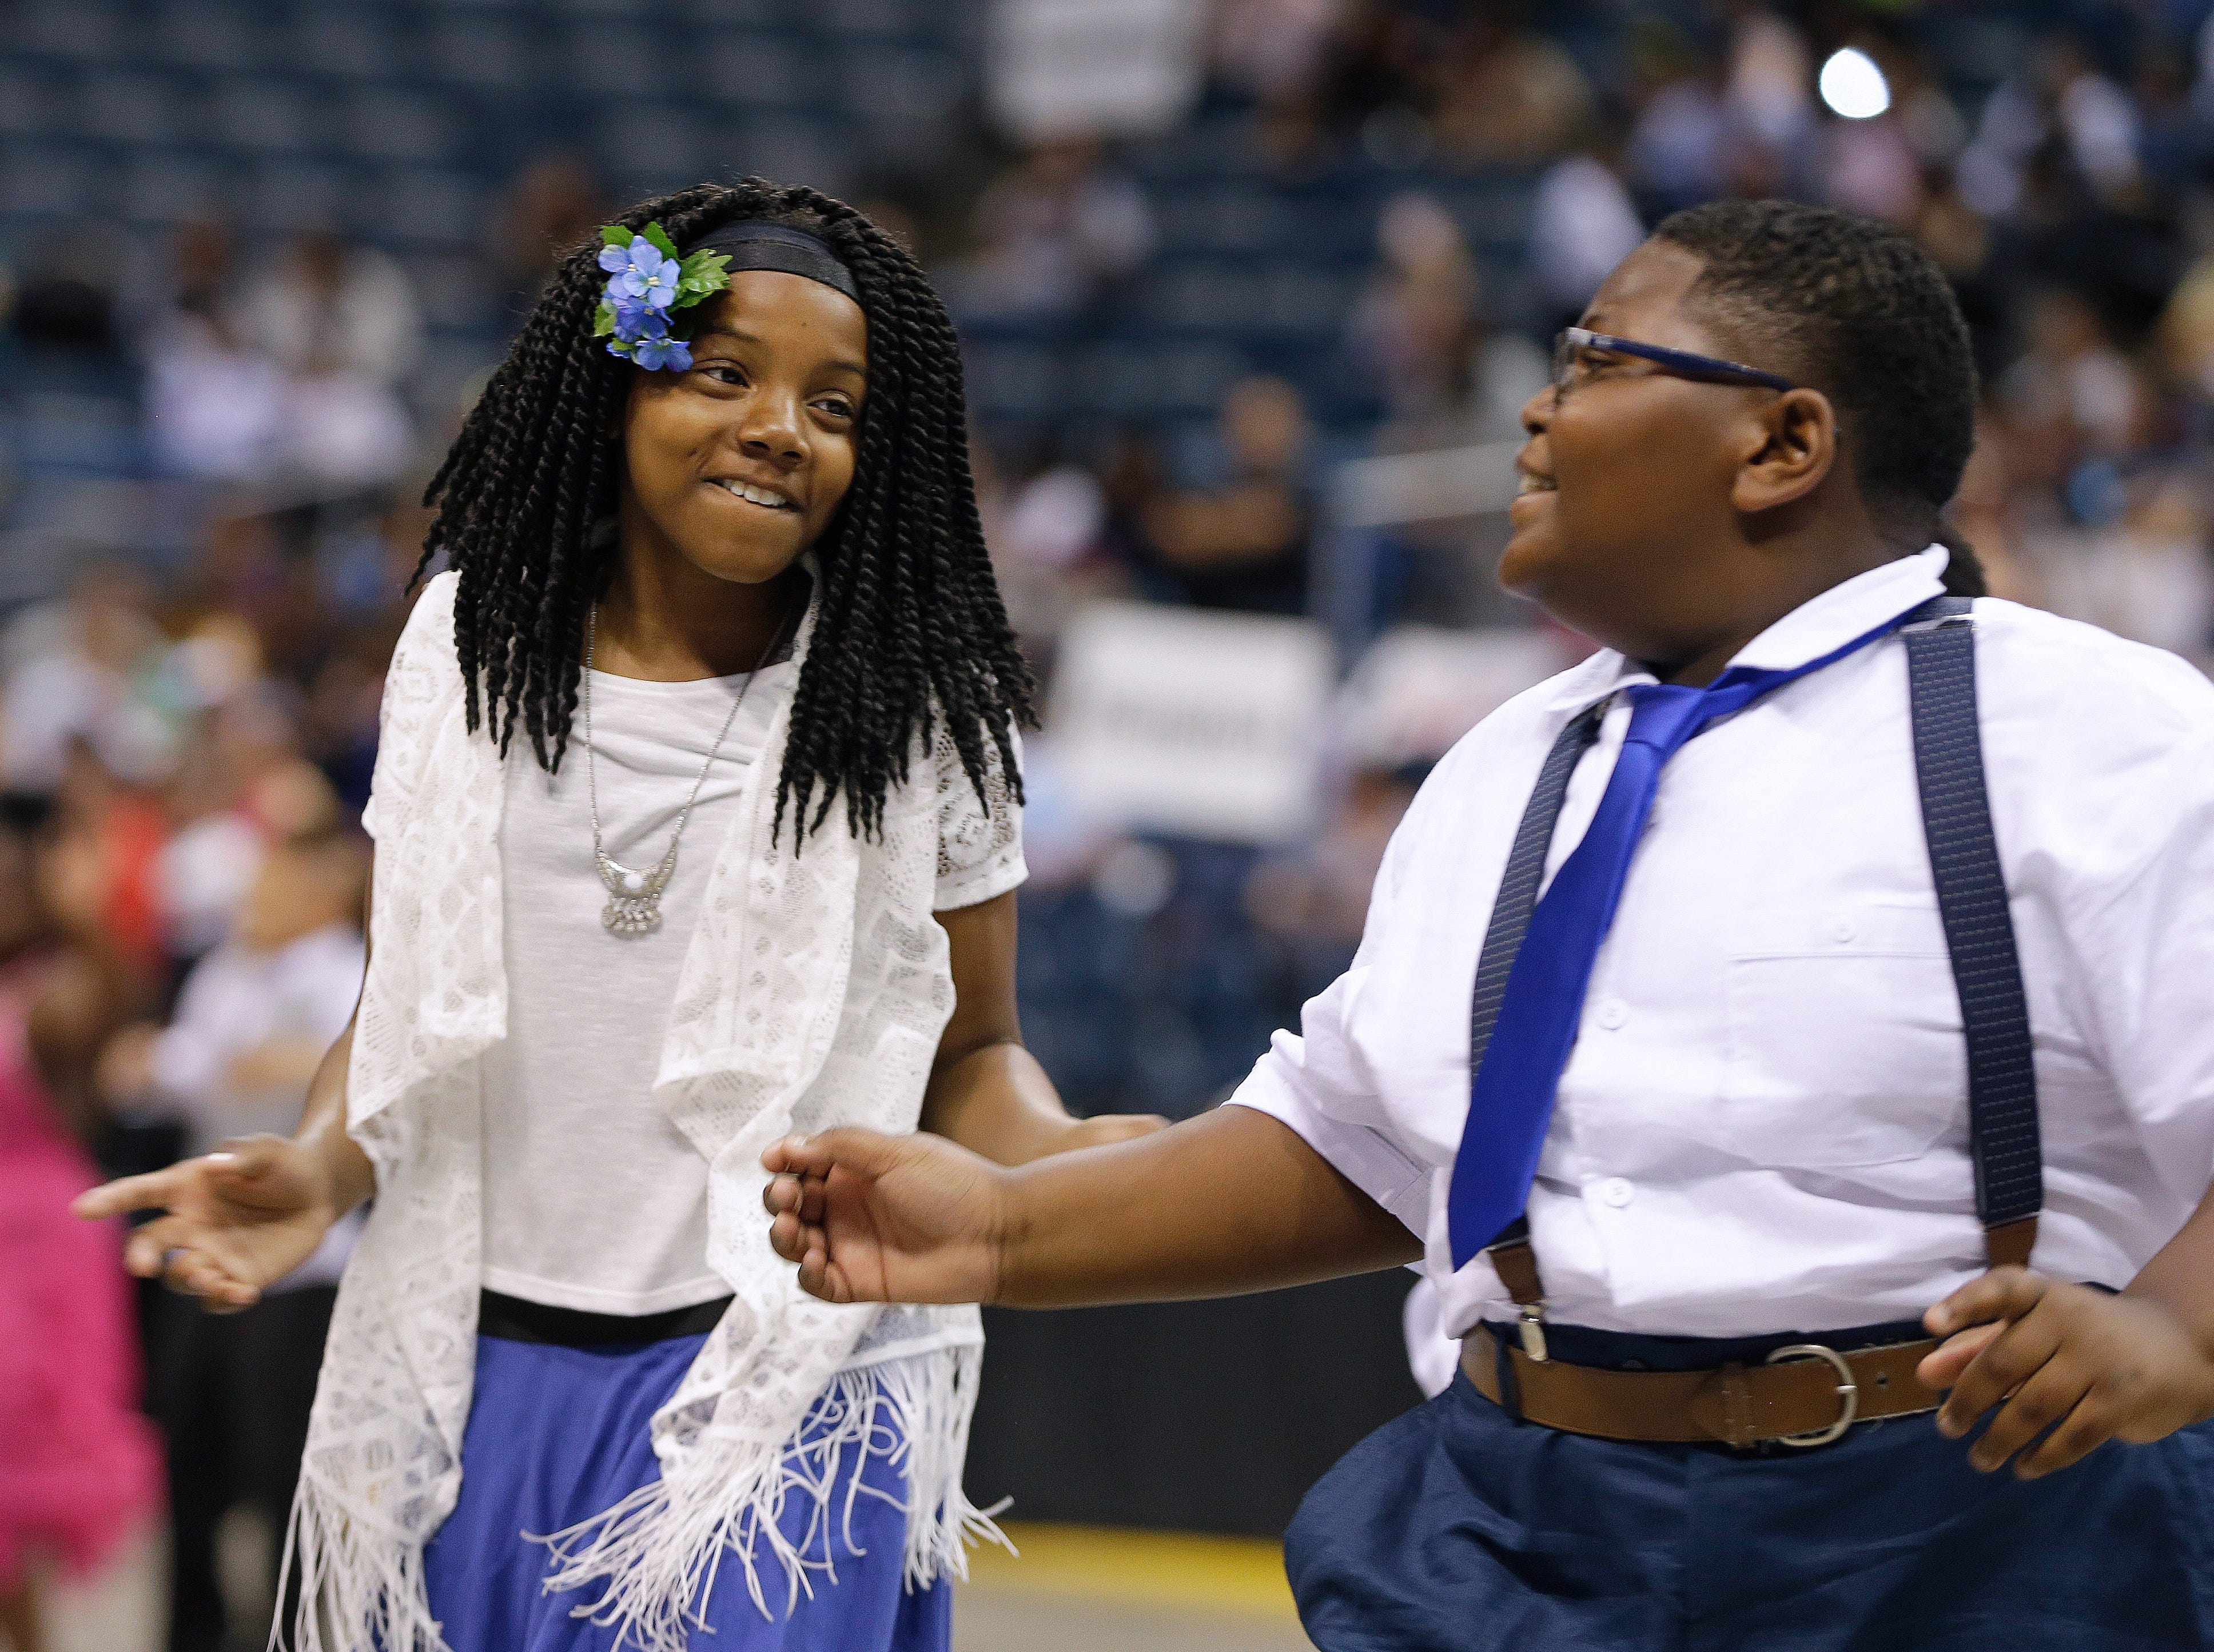 2016: Jalony Brown, and Tamaiah Laster, 10, both from Craig Montessori school, dance in the annual Mad Hot Ballroom and Tap competition at the BMO Harris Bradley Center.